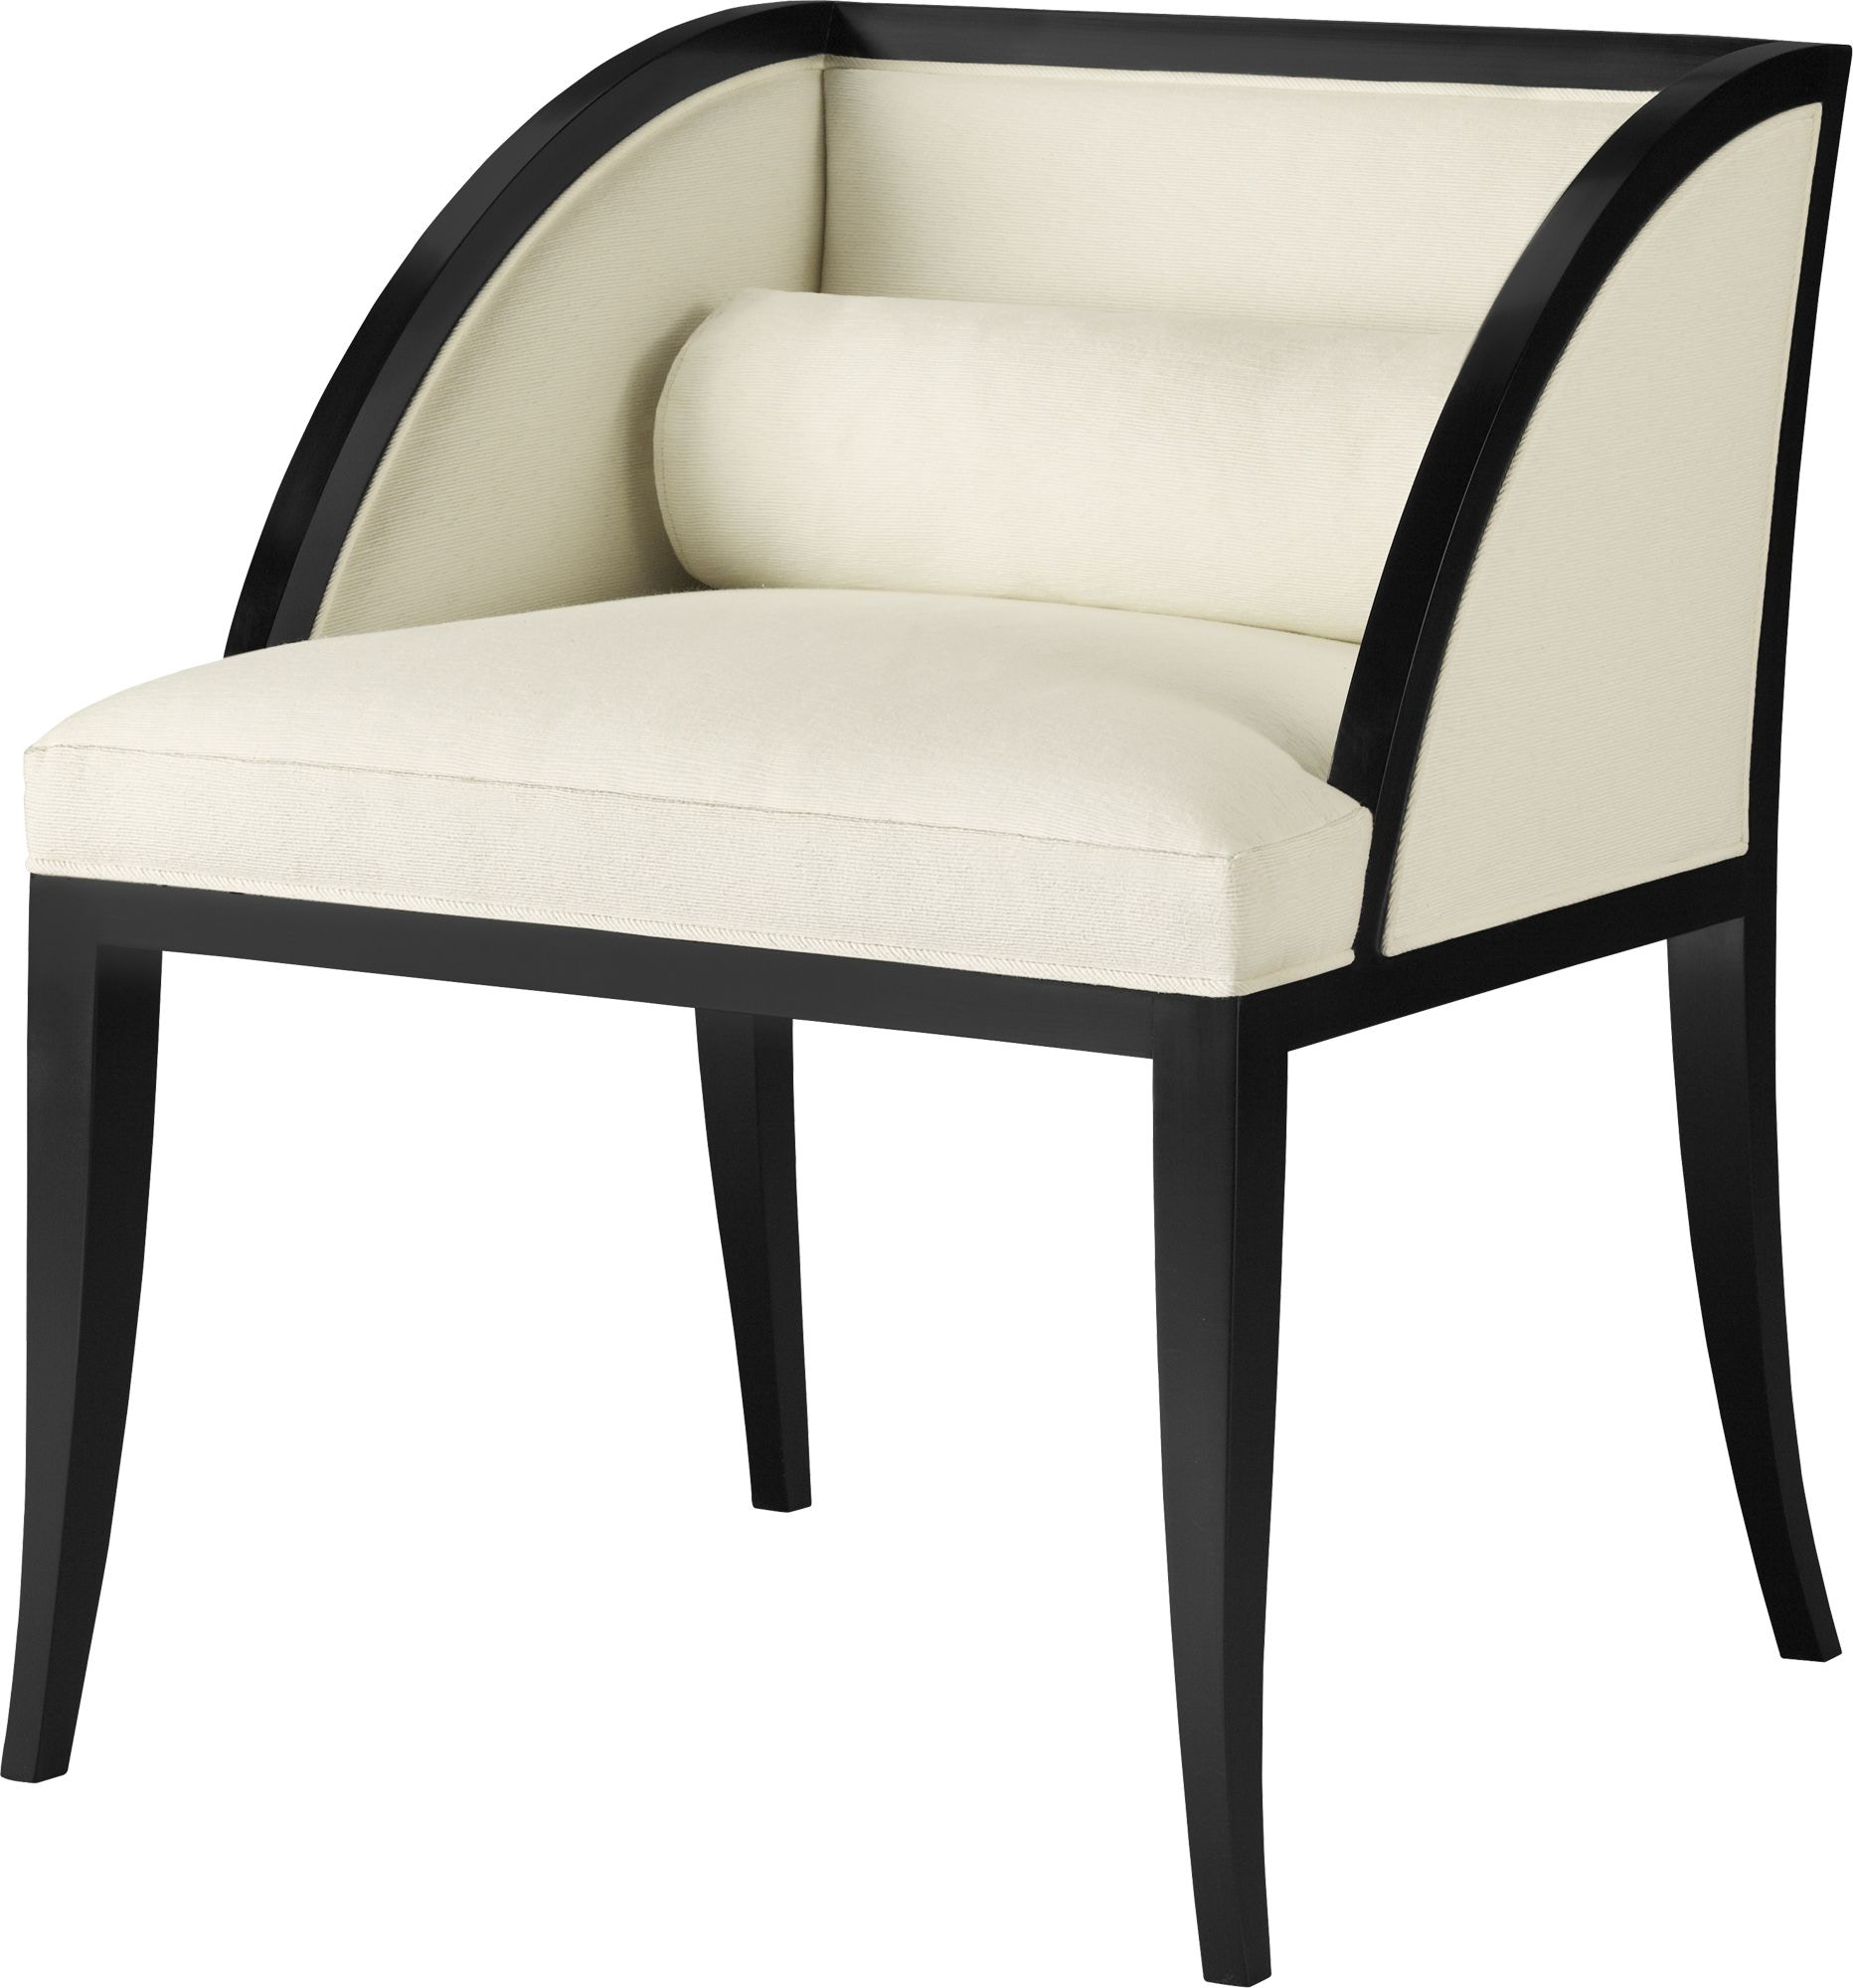 Baker Furniture Dining Room Jacques Garcia Palerme Dining Chair